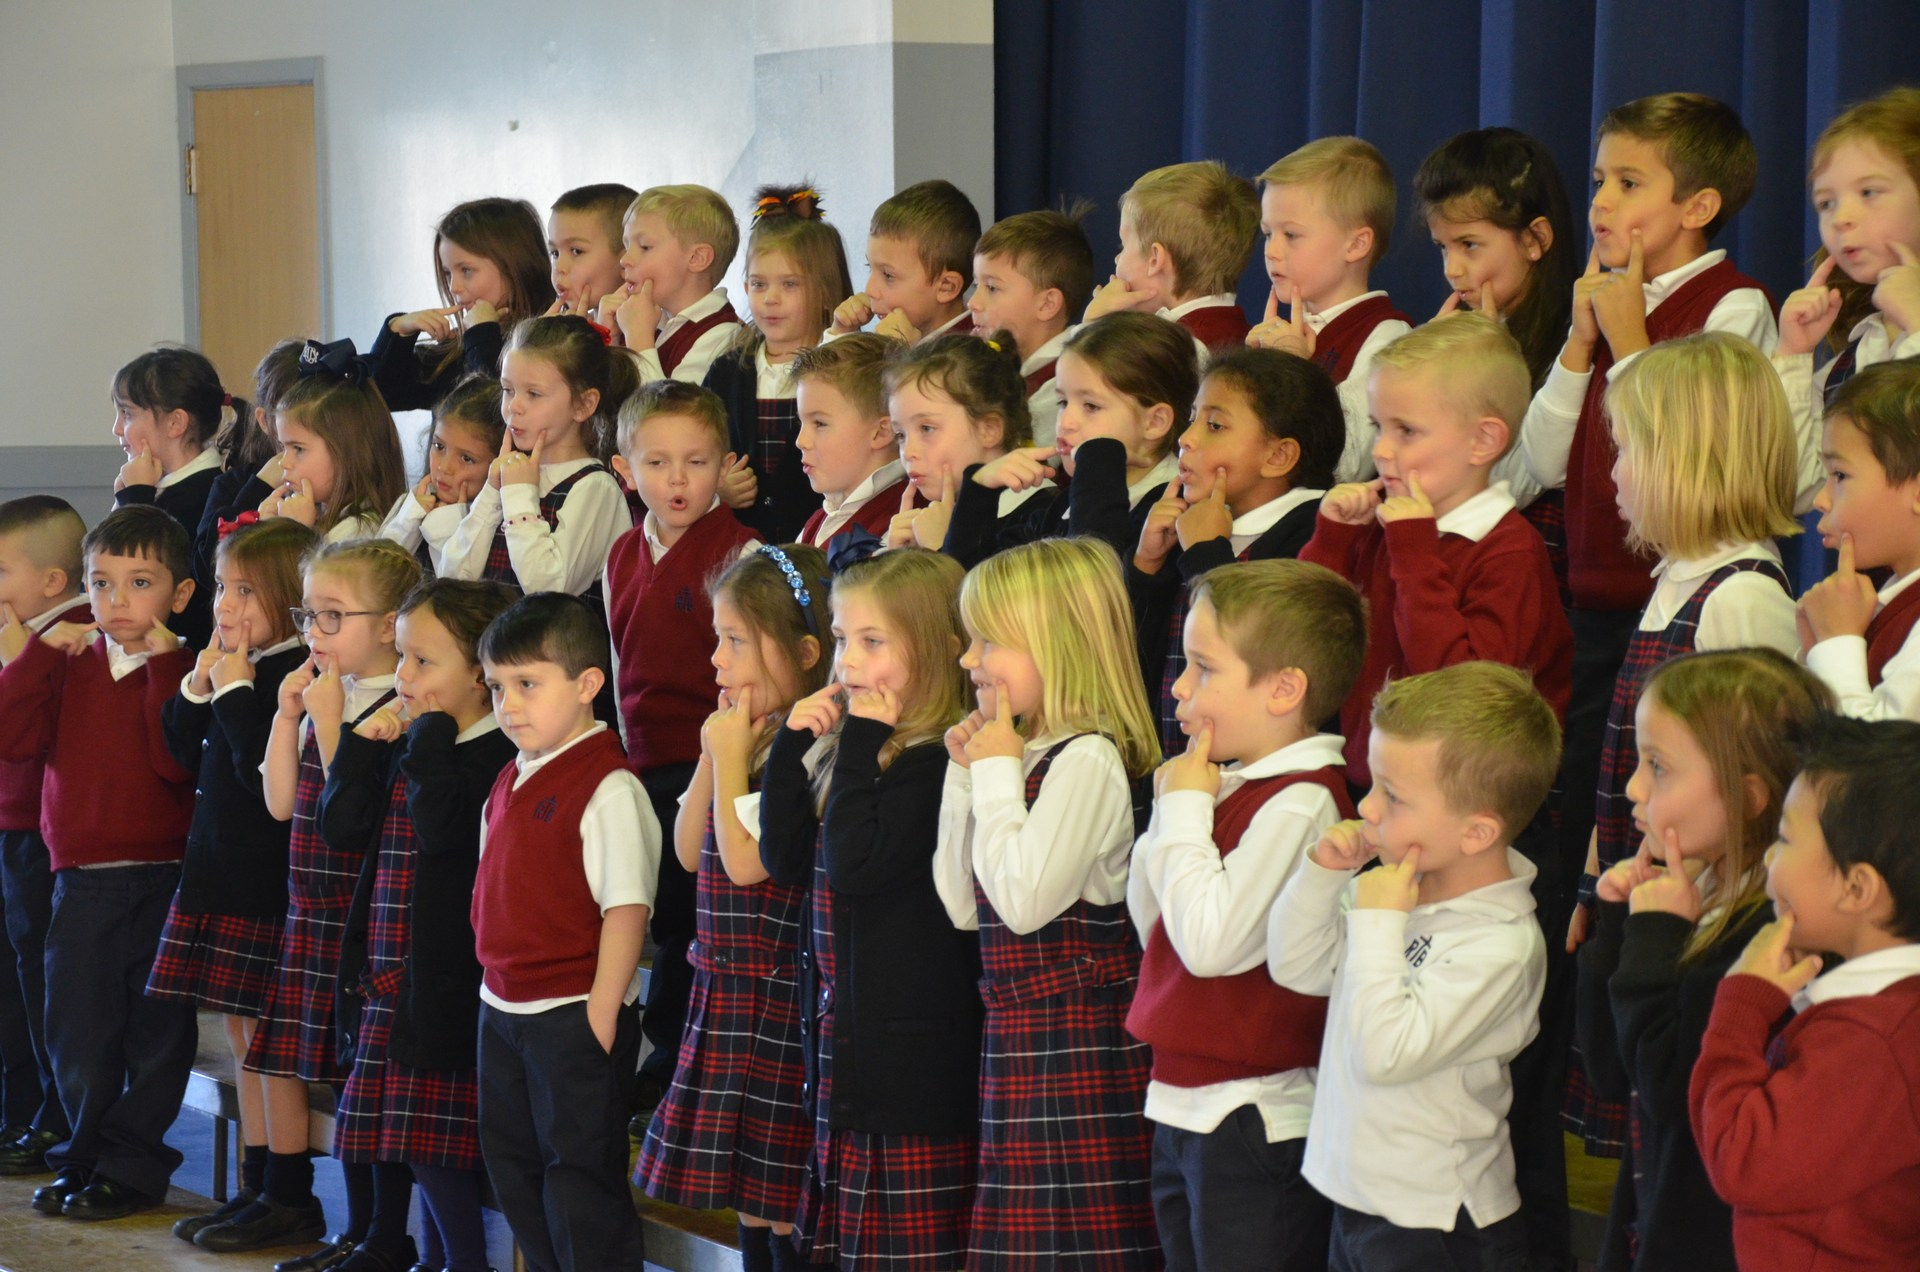 Students sing second song during concert